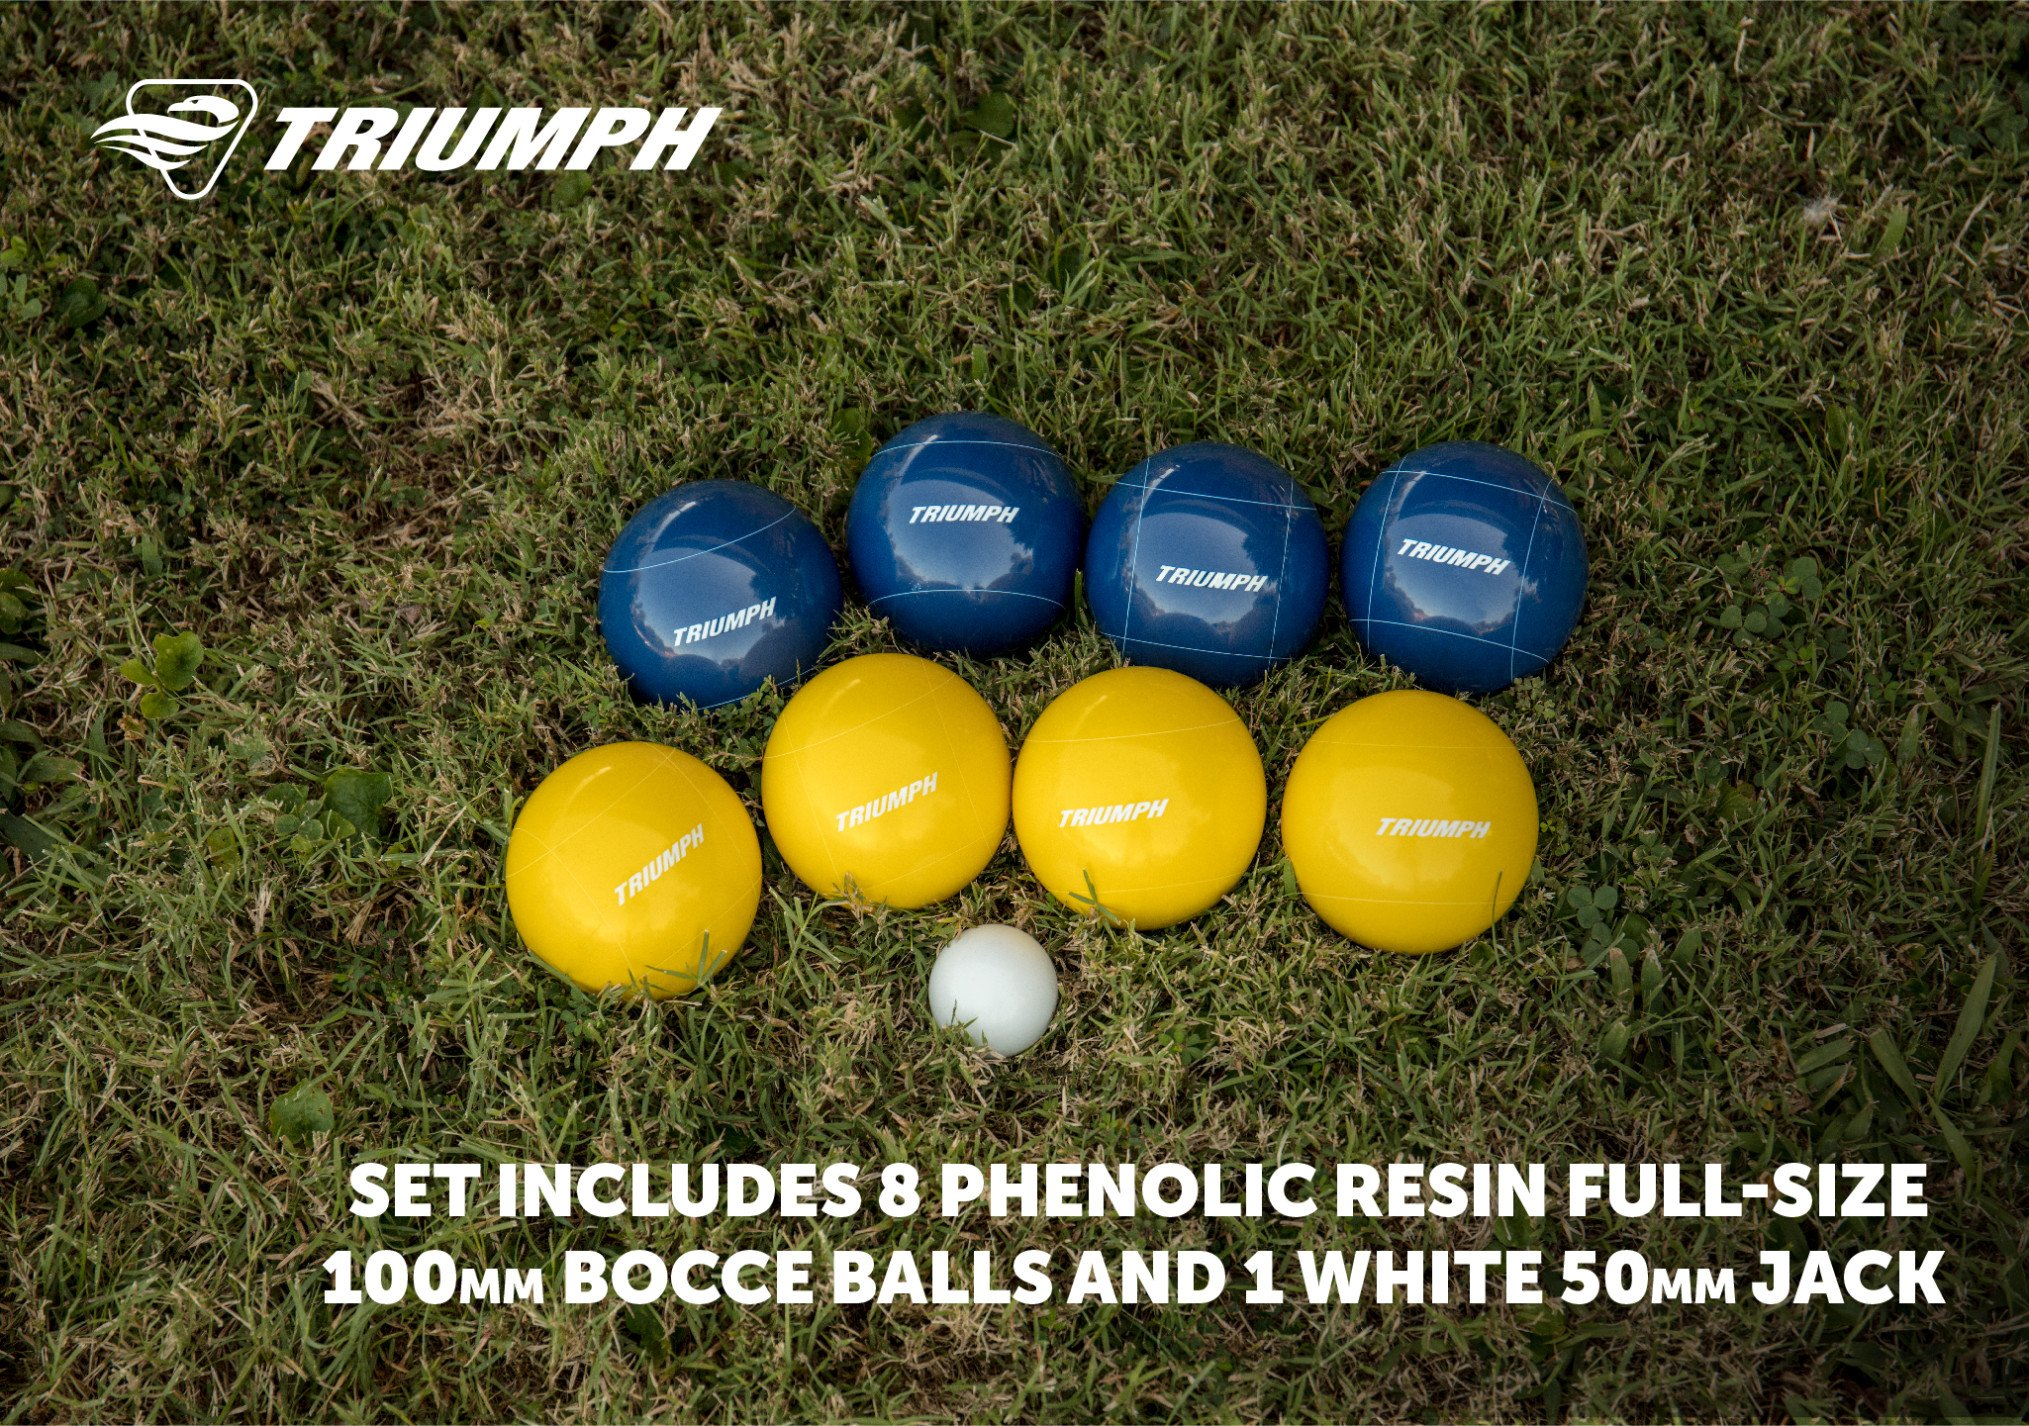 Triumph All Pro 100mm Bocce Set Includes Eight Bocce Balls, One 50mm Jack, and Carry Bag by Triumph Sports (Image #4)